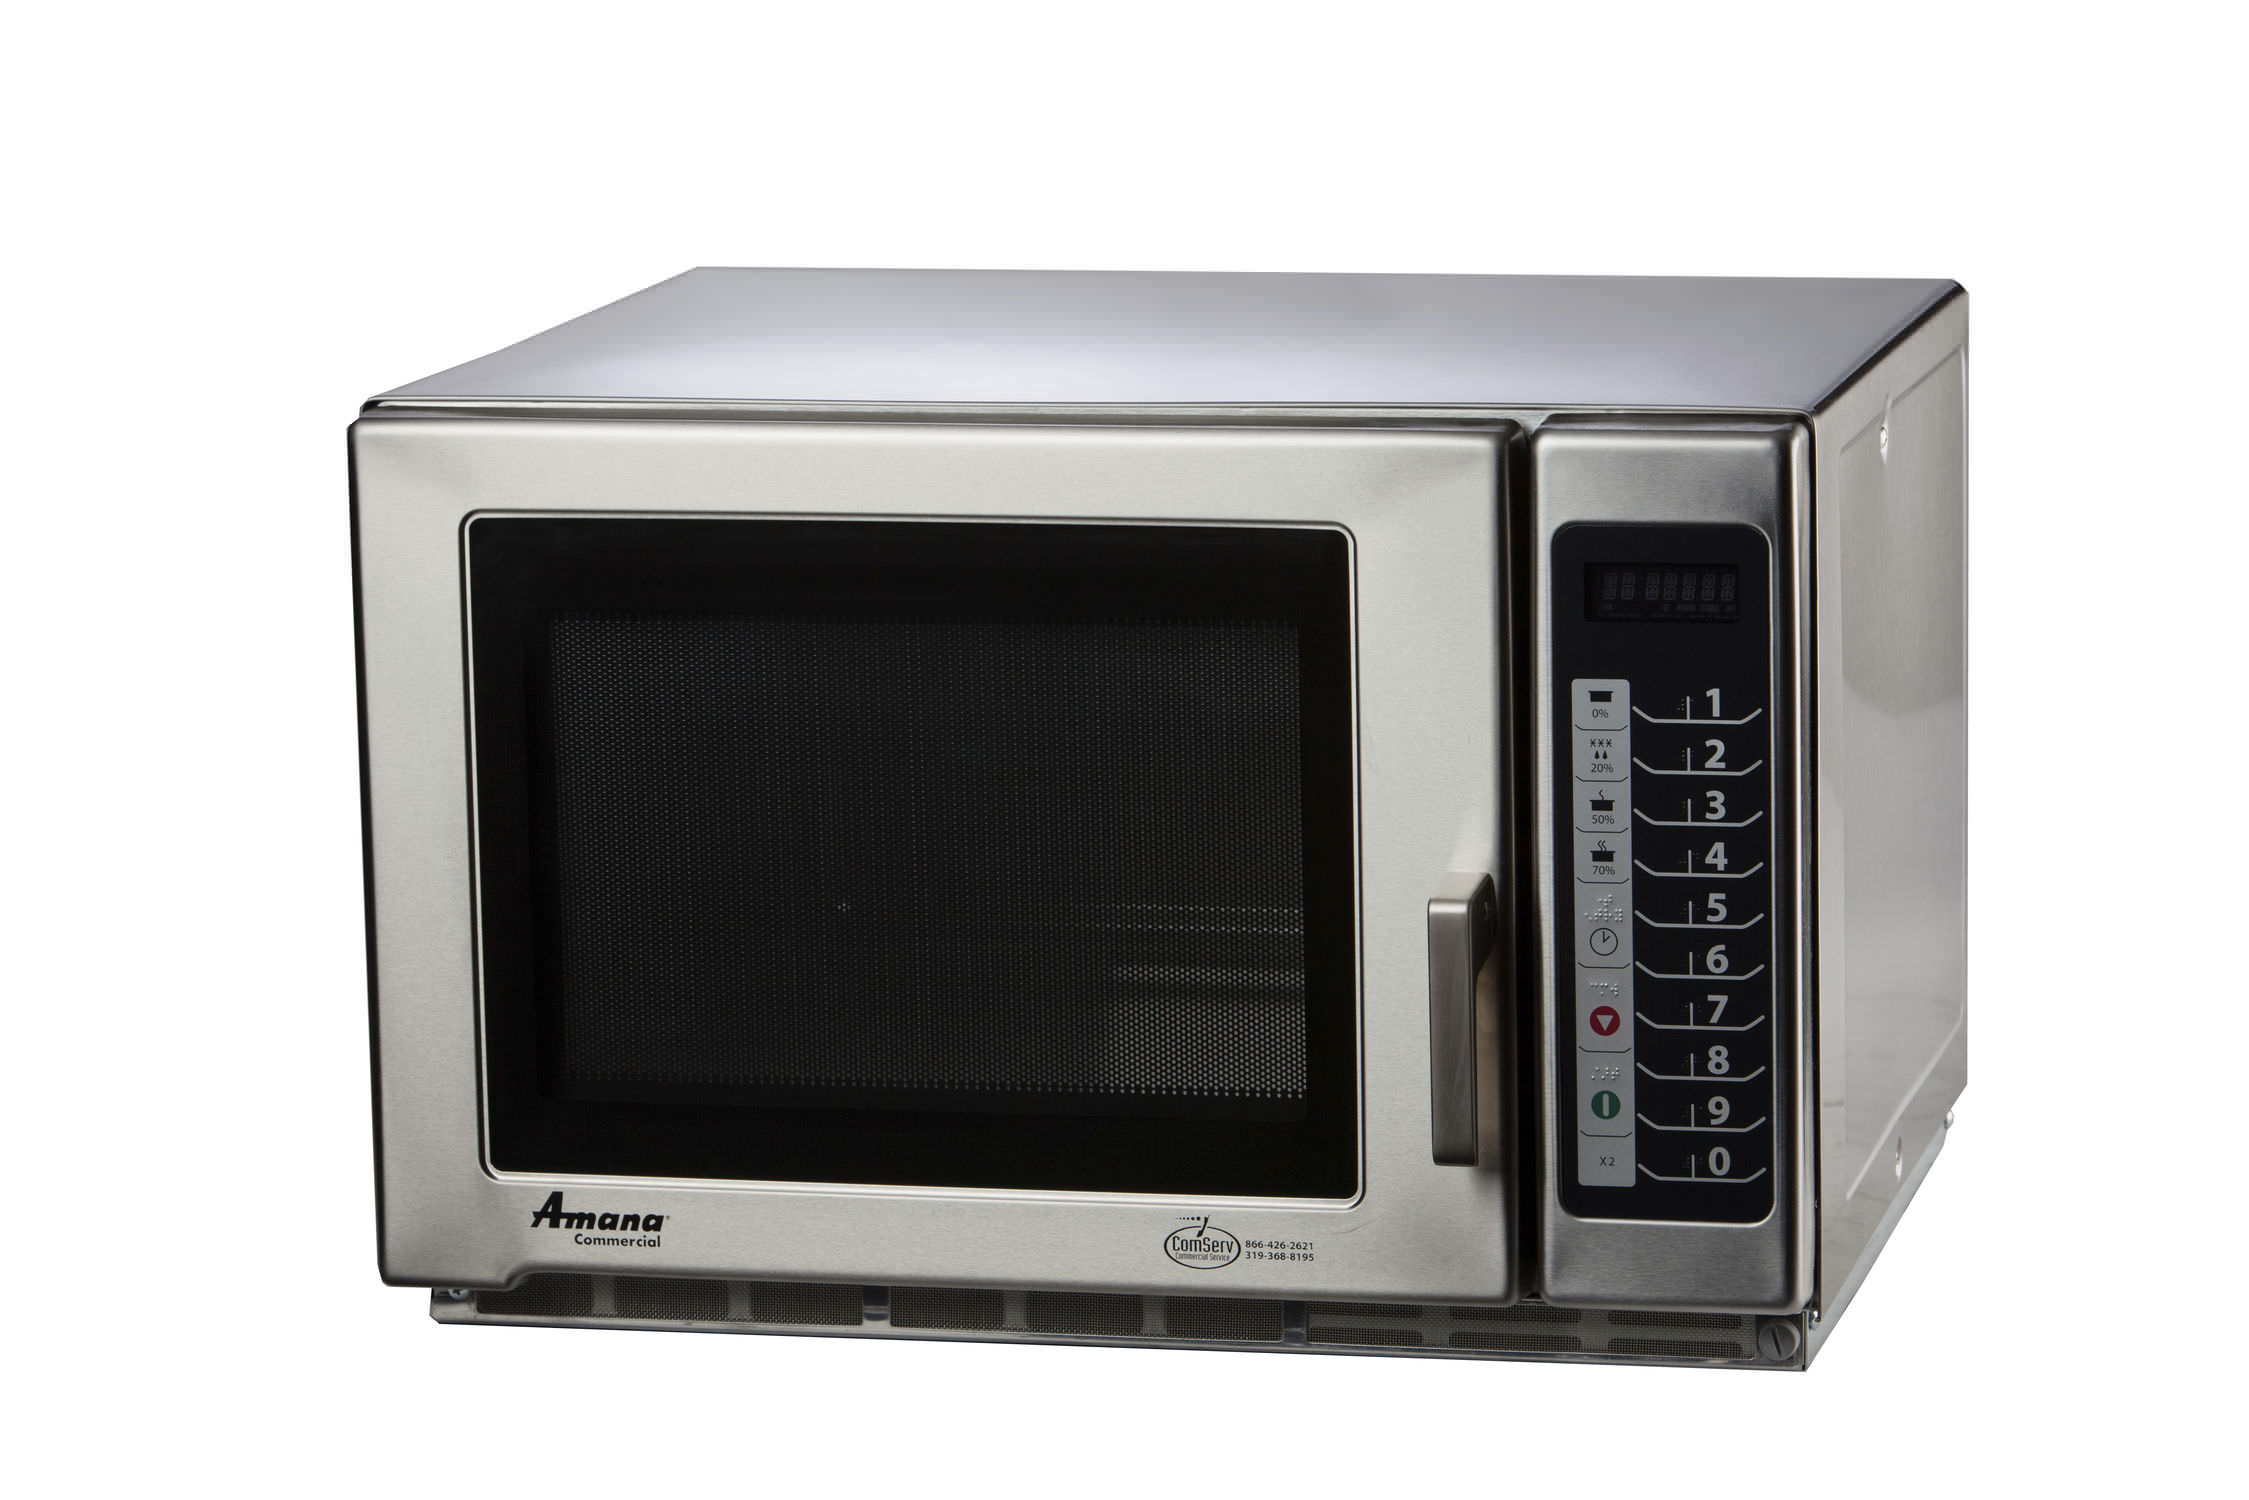 Electric Oven Commercial Microwave Rfs18ts